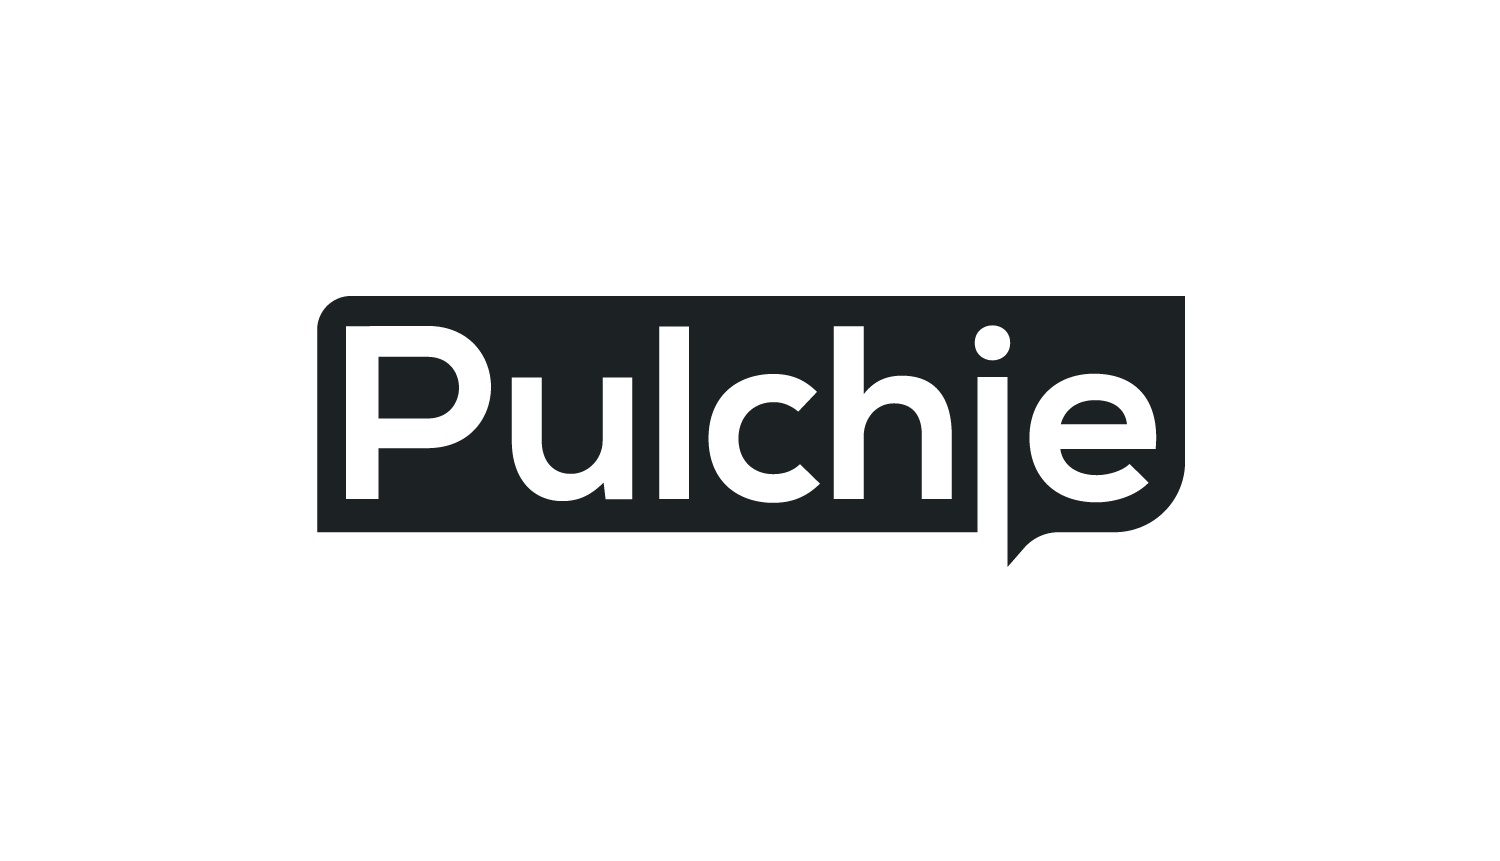 Welcome to Pulchie